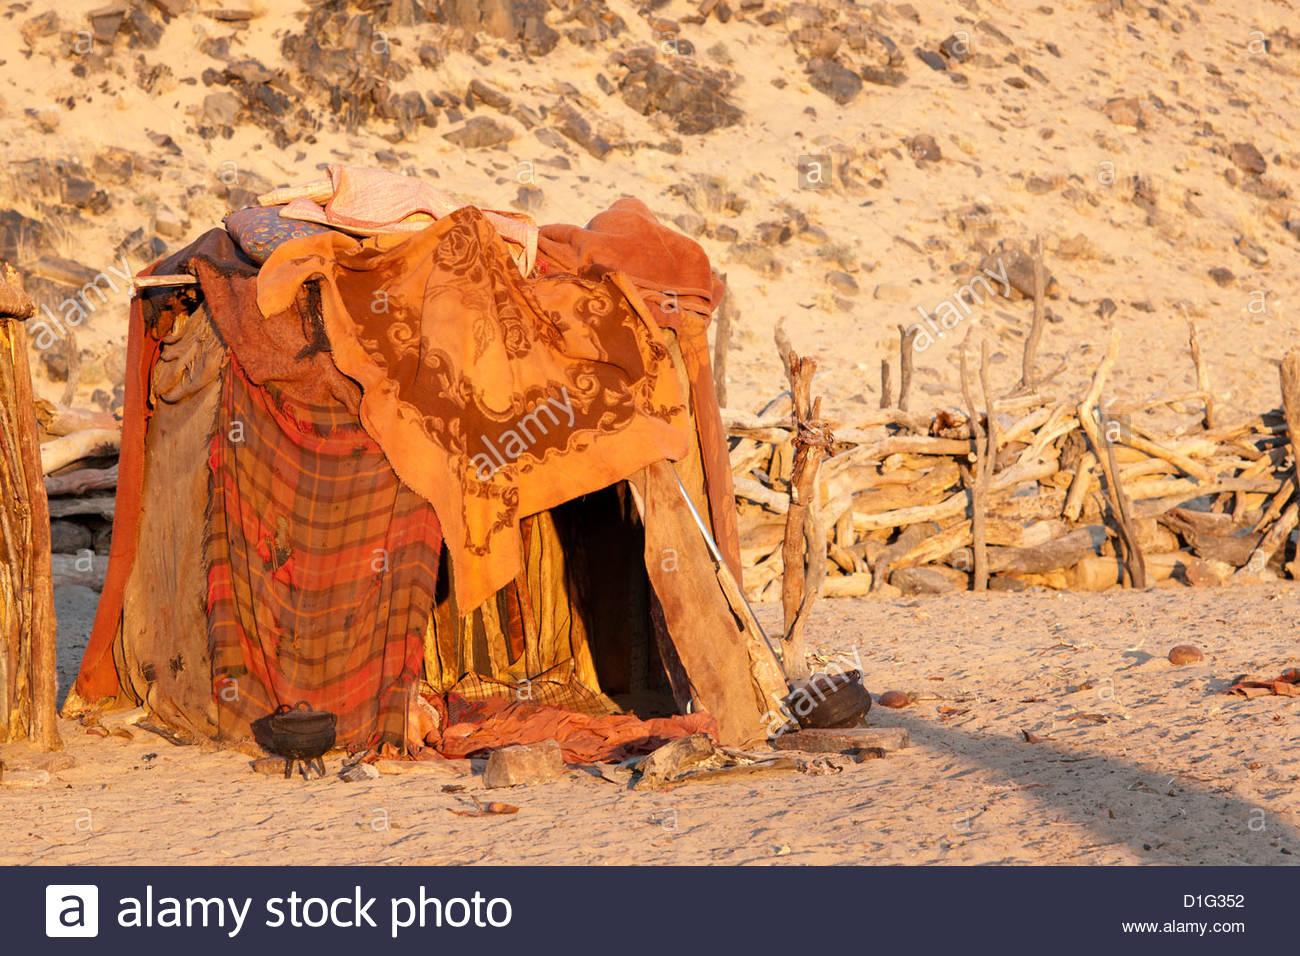 Himba hut covered with patterned blankets, Purros Himba village, northern Namibia, Africa - Stock Image